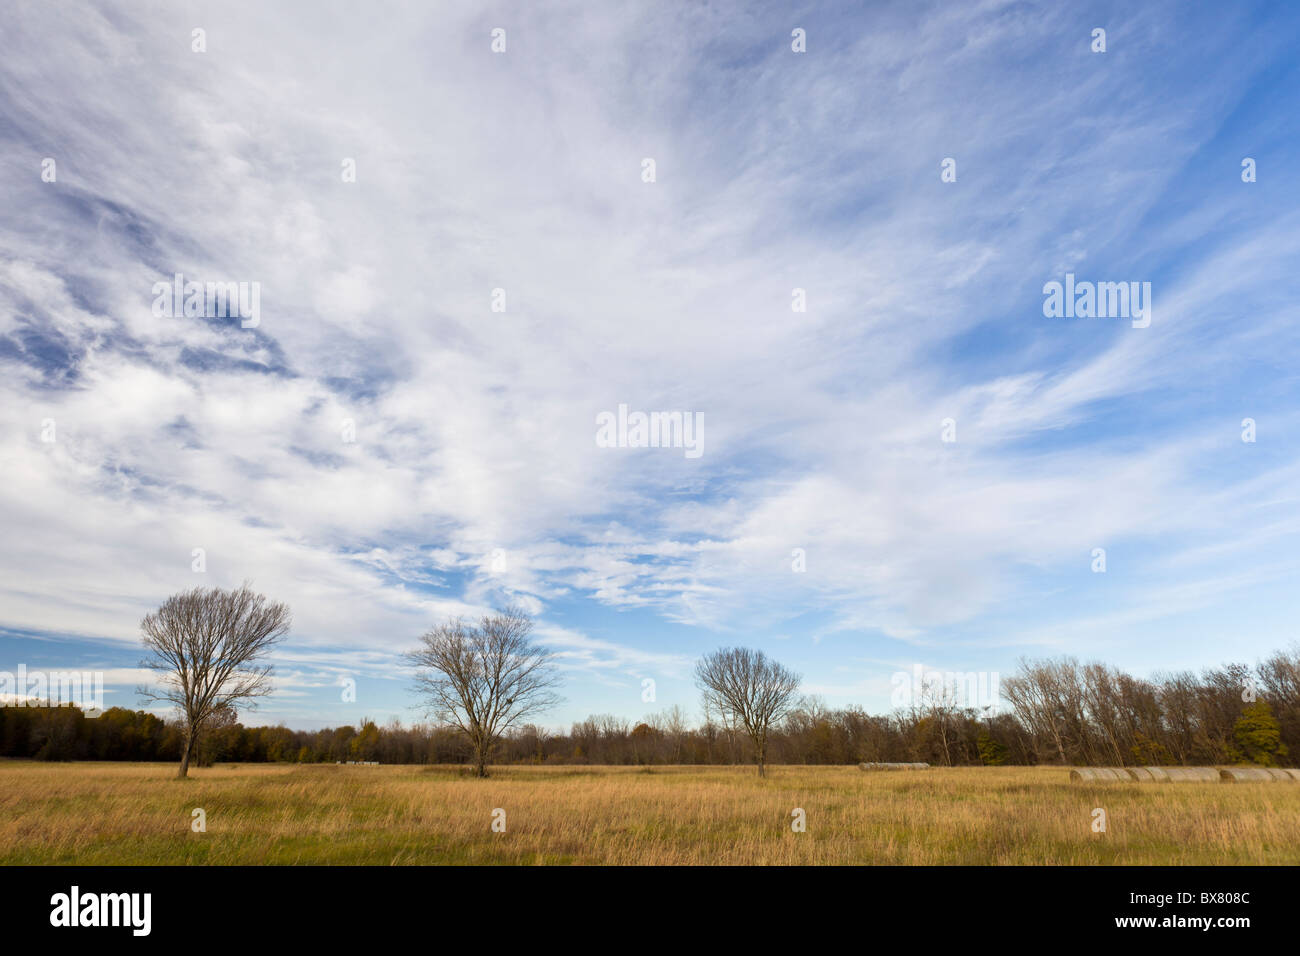 Row of barren trees and wild grass during late winter at the Spiro Mounds Archeological Site in Oklahoma, USA. - Stock Image